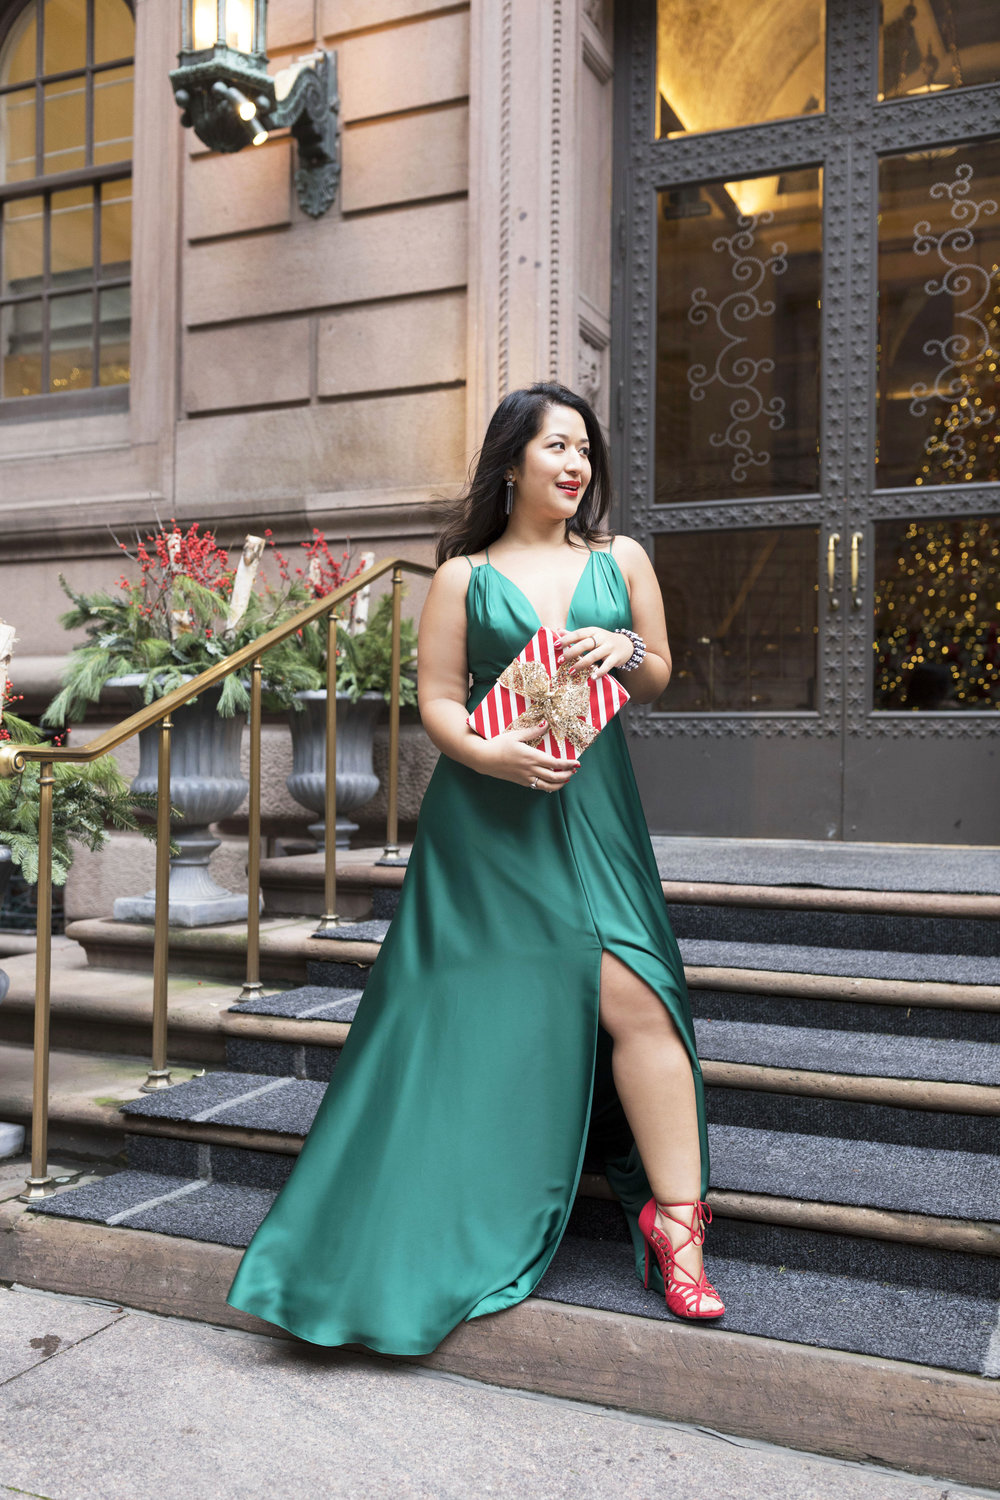 Krity S x Holiday Outfit x Forest Silk Aidan Mattox Gown 8.jpg